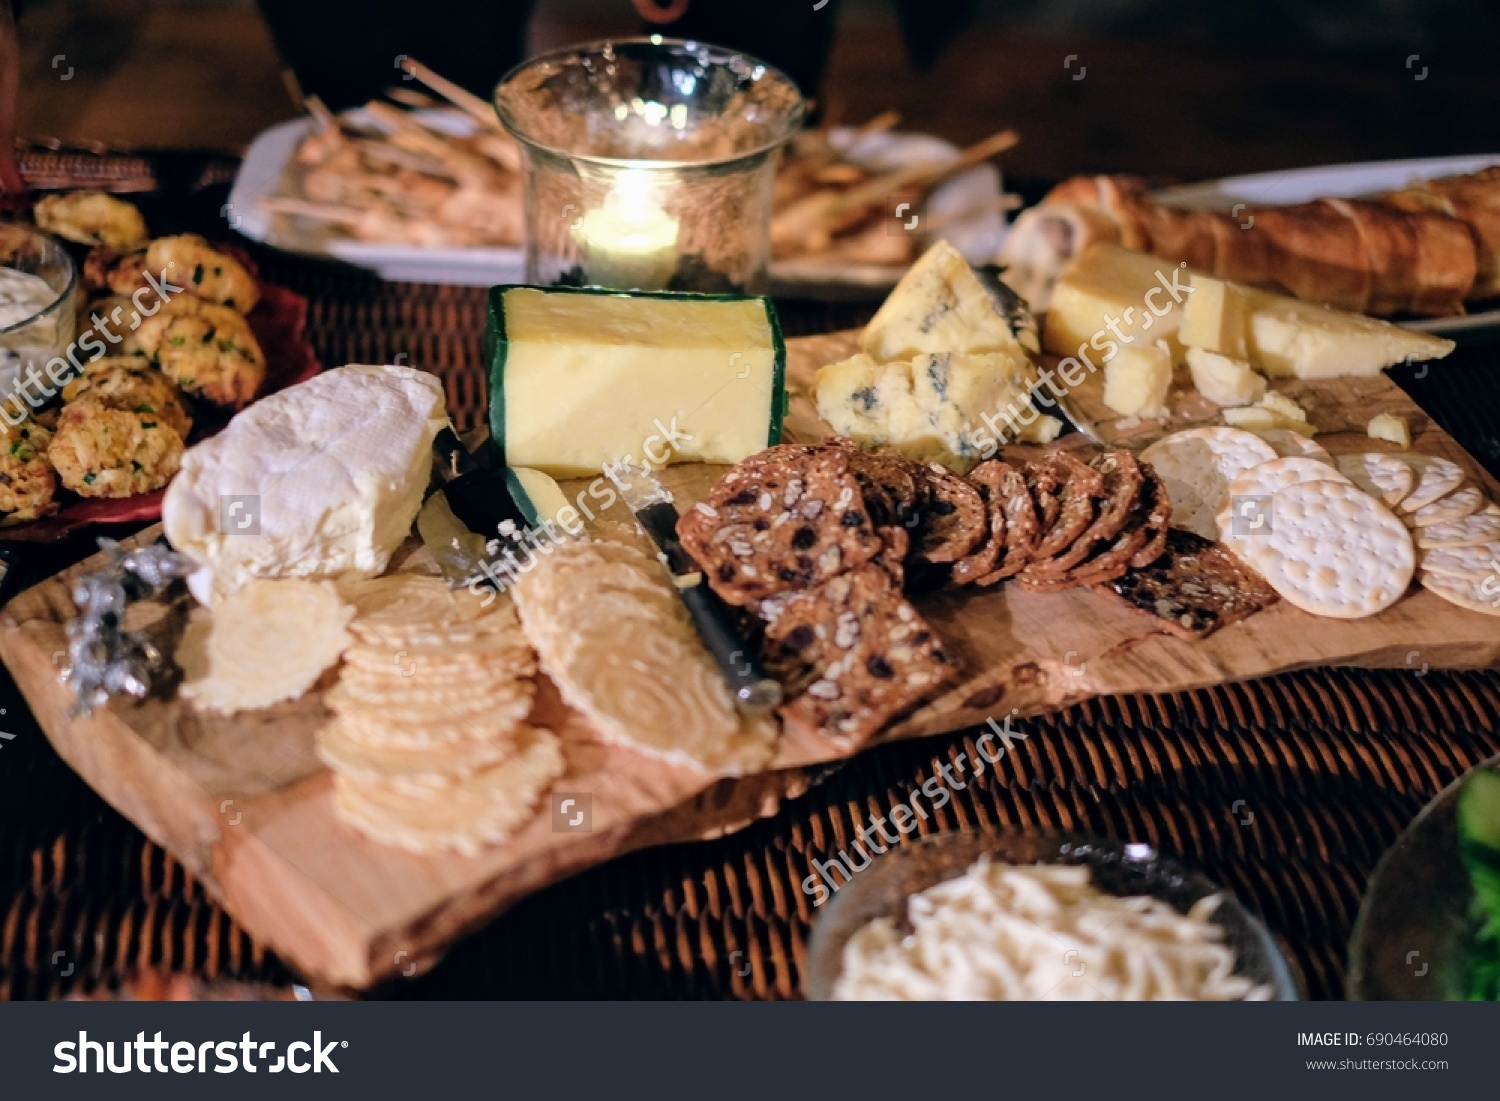 Fancy cheese plate selection & Fancy Cheese Plate Selection Stock Photo 690464080 - Shutterstock